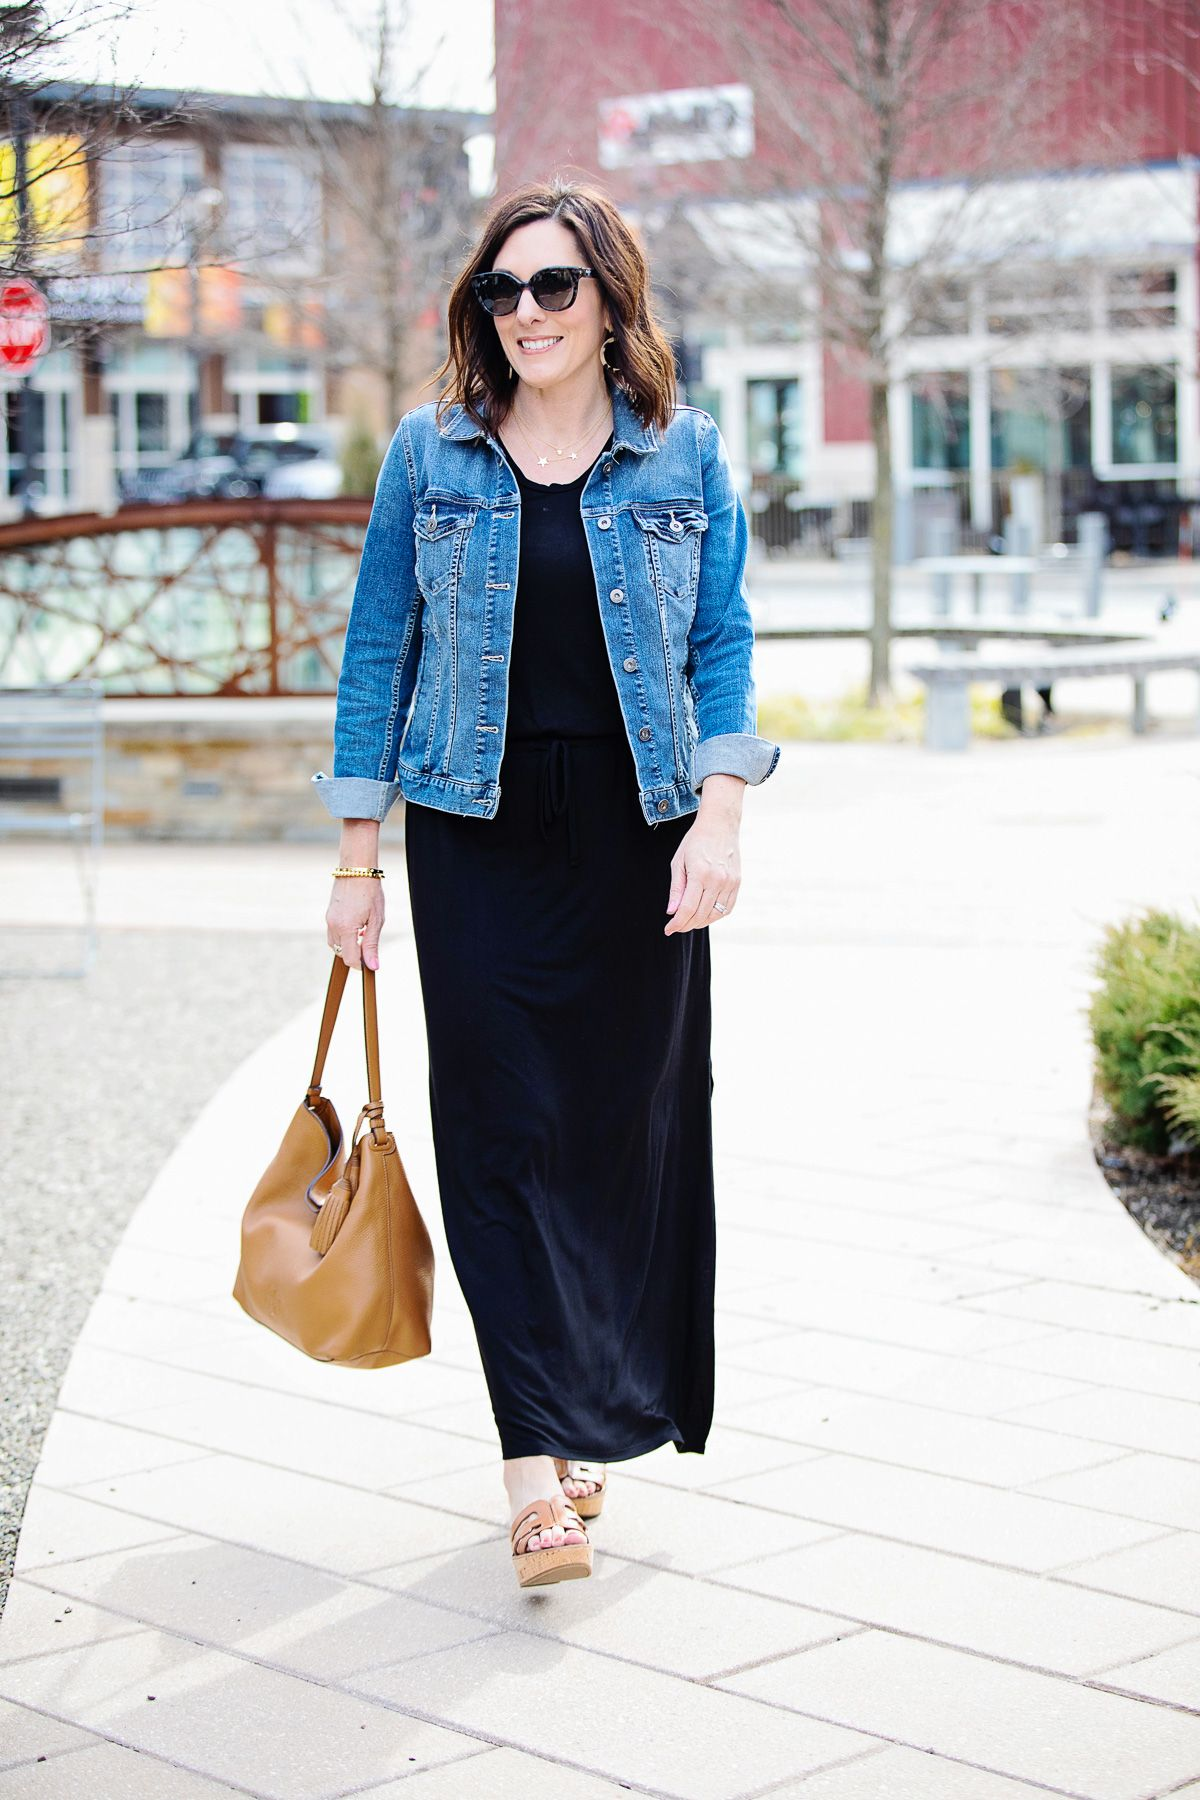 e638015faddb79 The Must-Have $69 Casual Dress for Spring | Caslon Drawstring V-Neck Jersey  Maxi Dress, Vince Camuto Jean Jacket, Tortoiseshell Hoop Earrings, ...